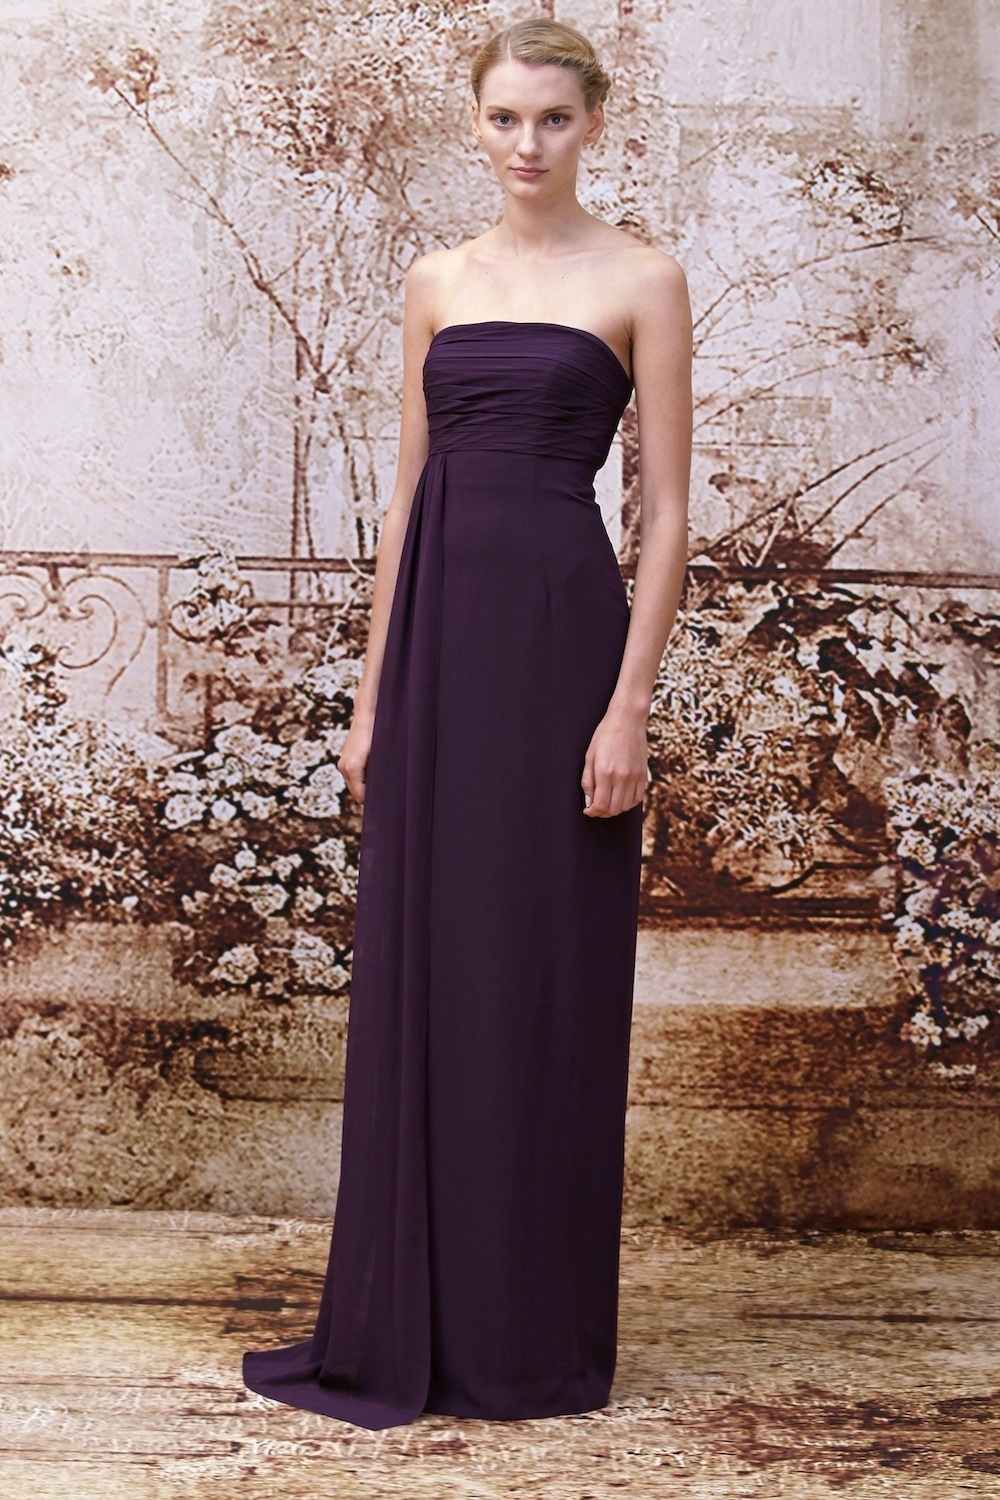 Royal_purple_bridesmaids_dress_from_monique_lhuillier.full